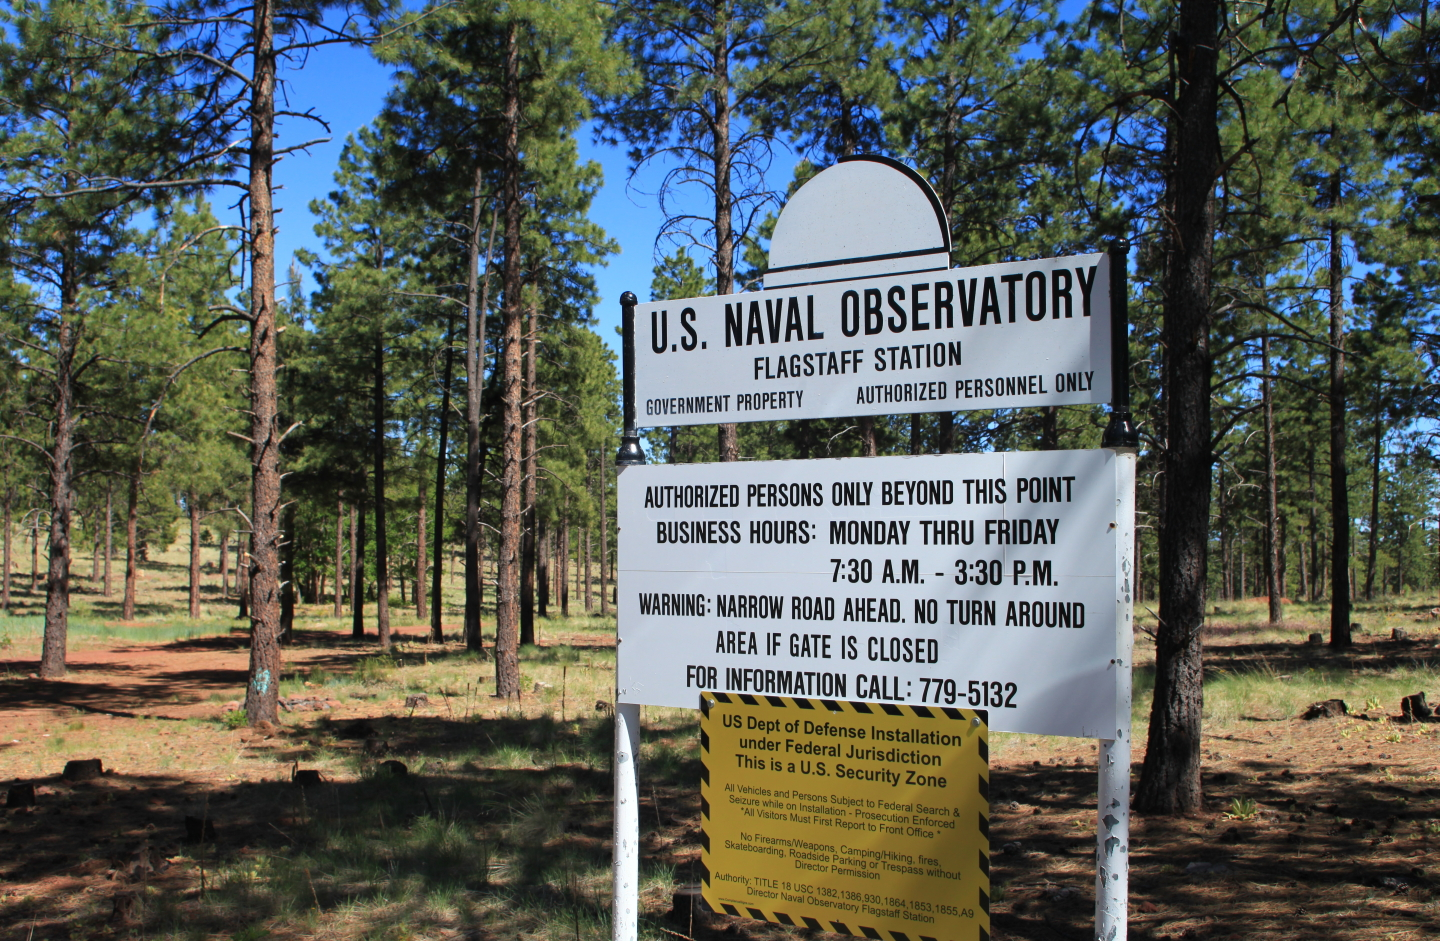 Earthly Musings Wayne Ranneys Geology Blog The Tranist Of - Map us observatory flagstaff